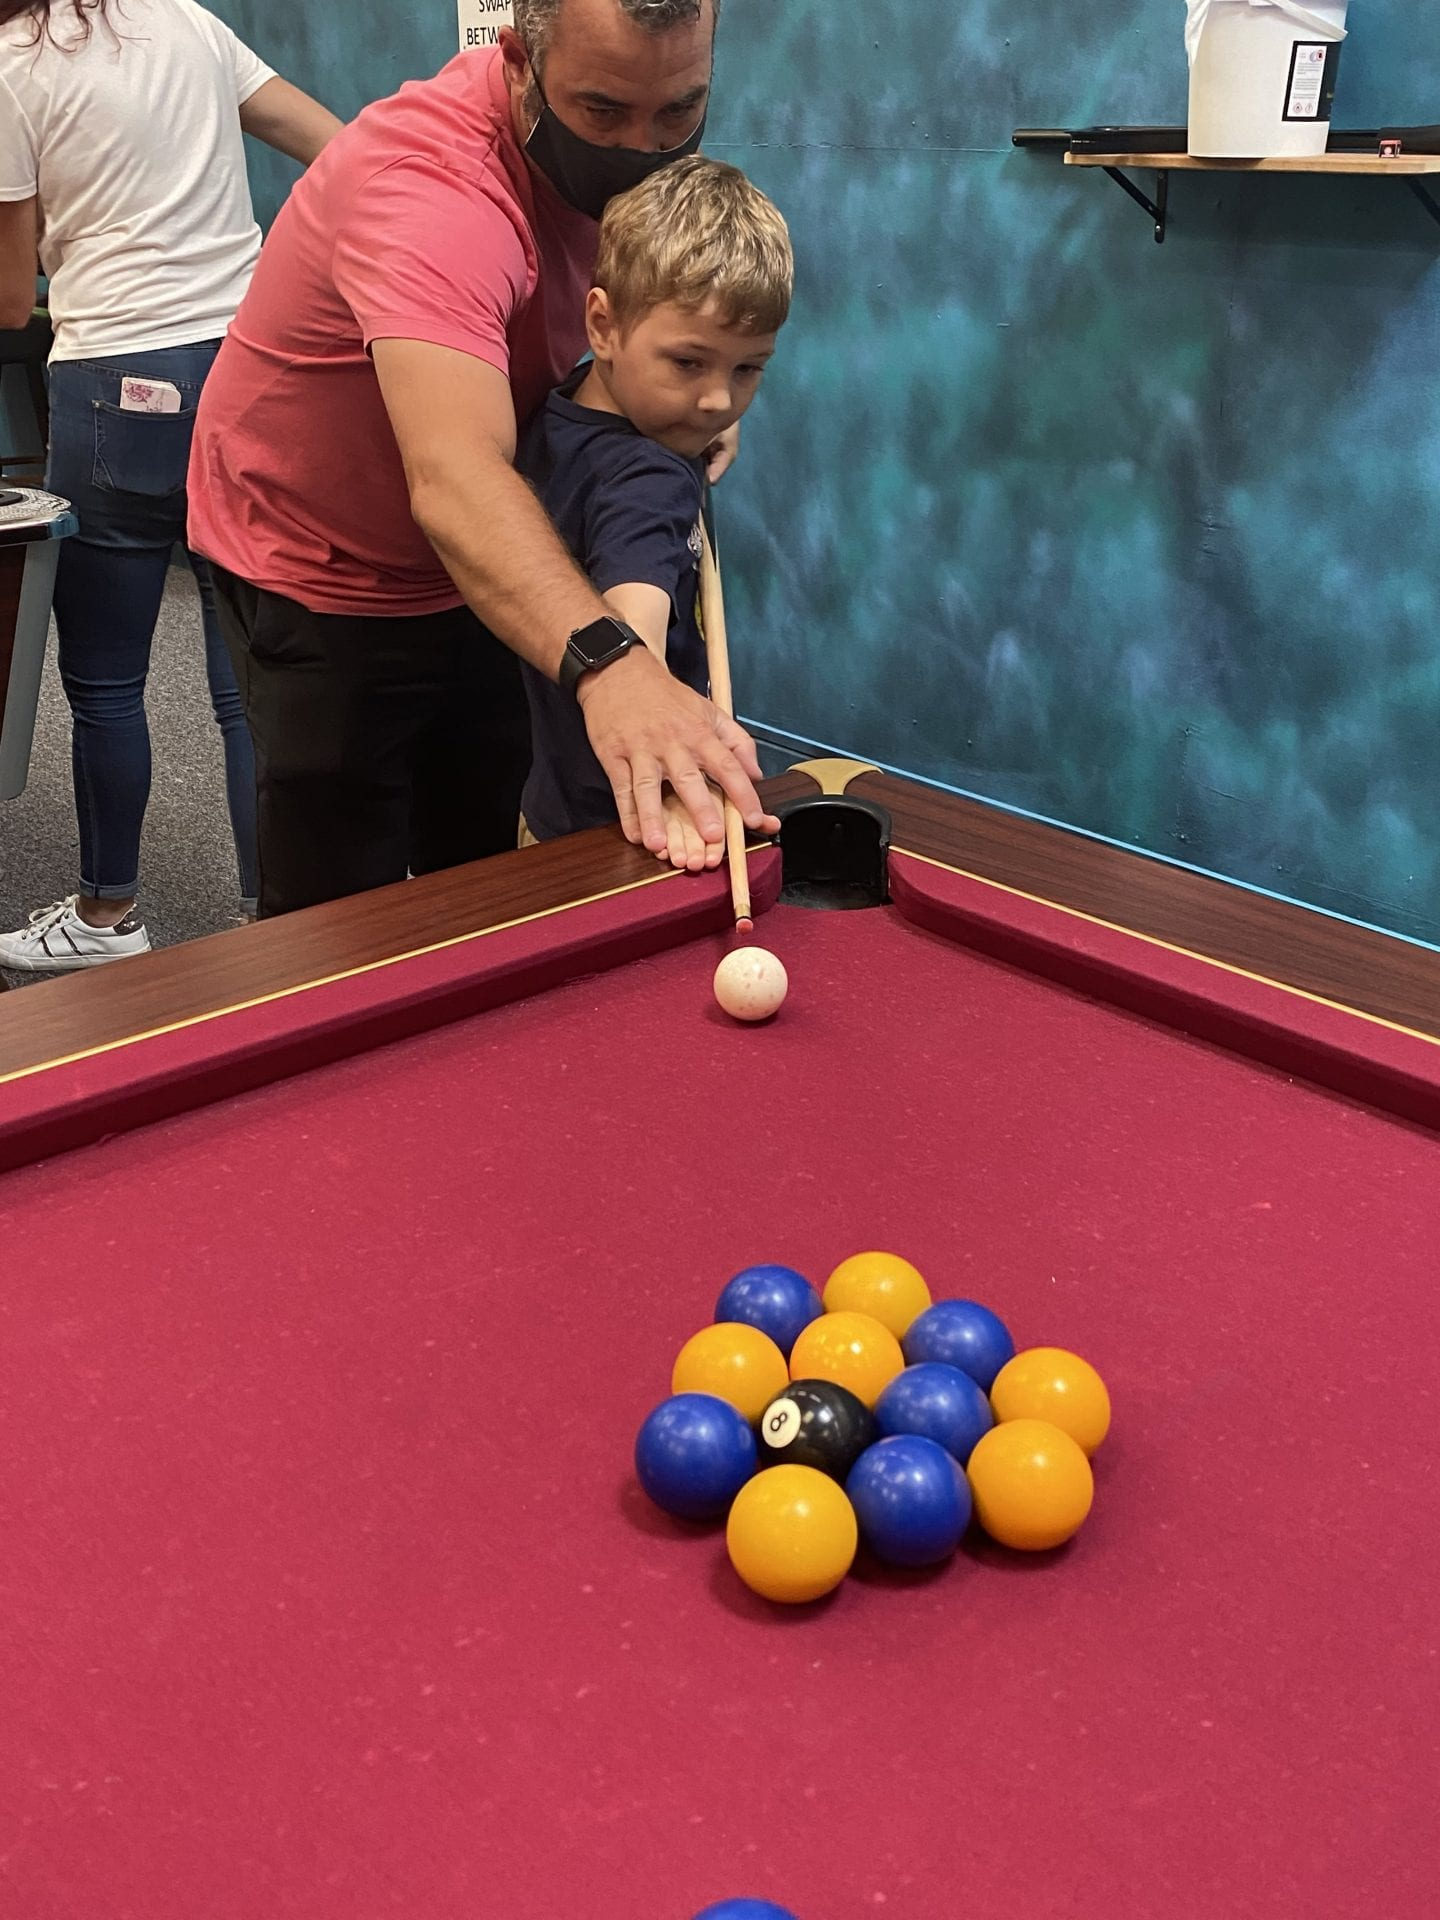 A dad teaching his son how to hit the que ball in pool